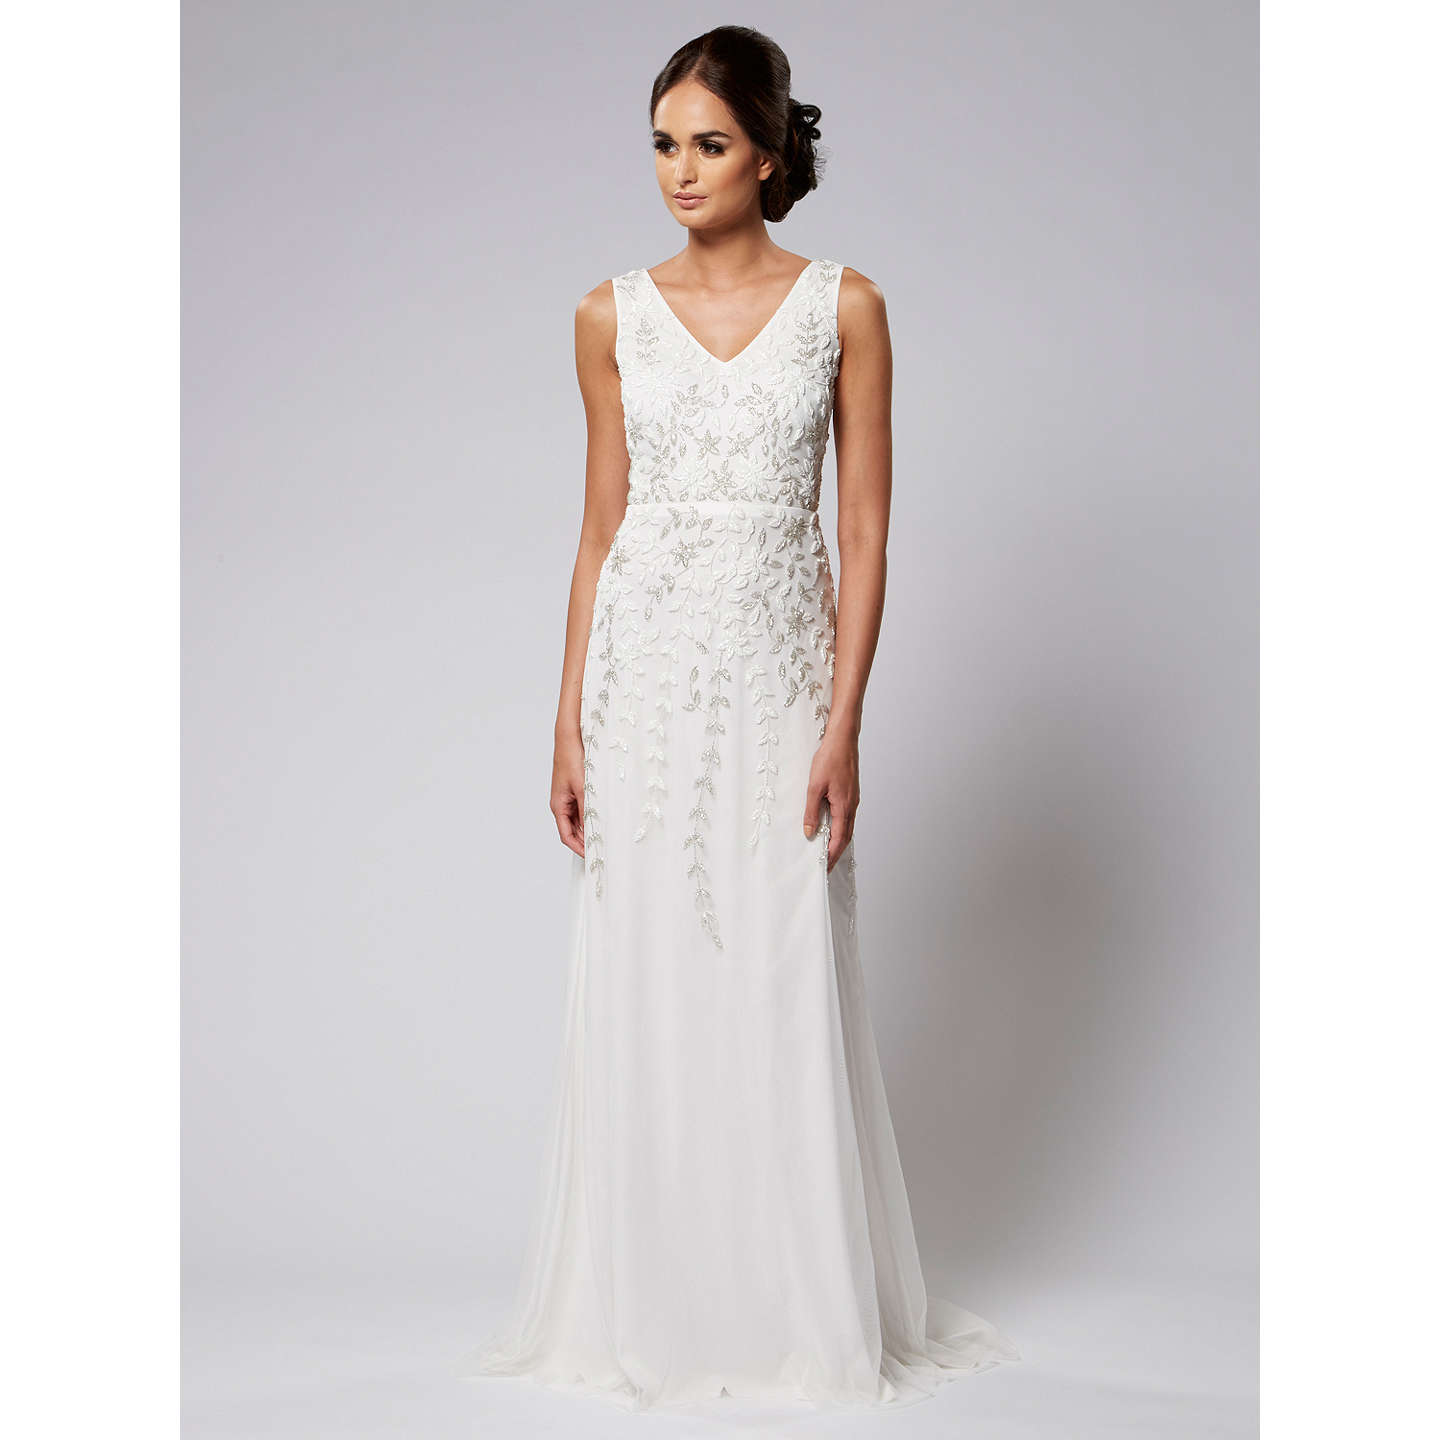 Raishma Floral Embroidered Bridal Gown, White At John Lewis